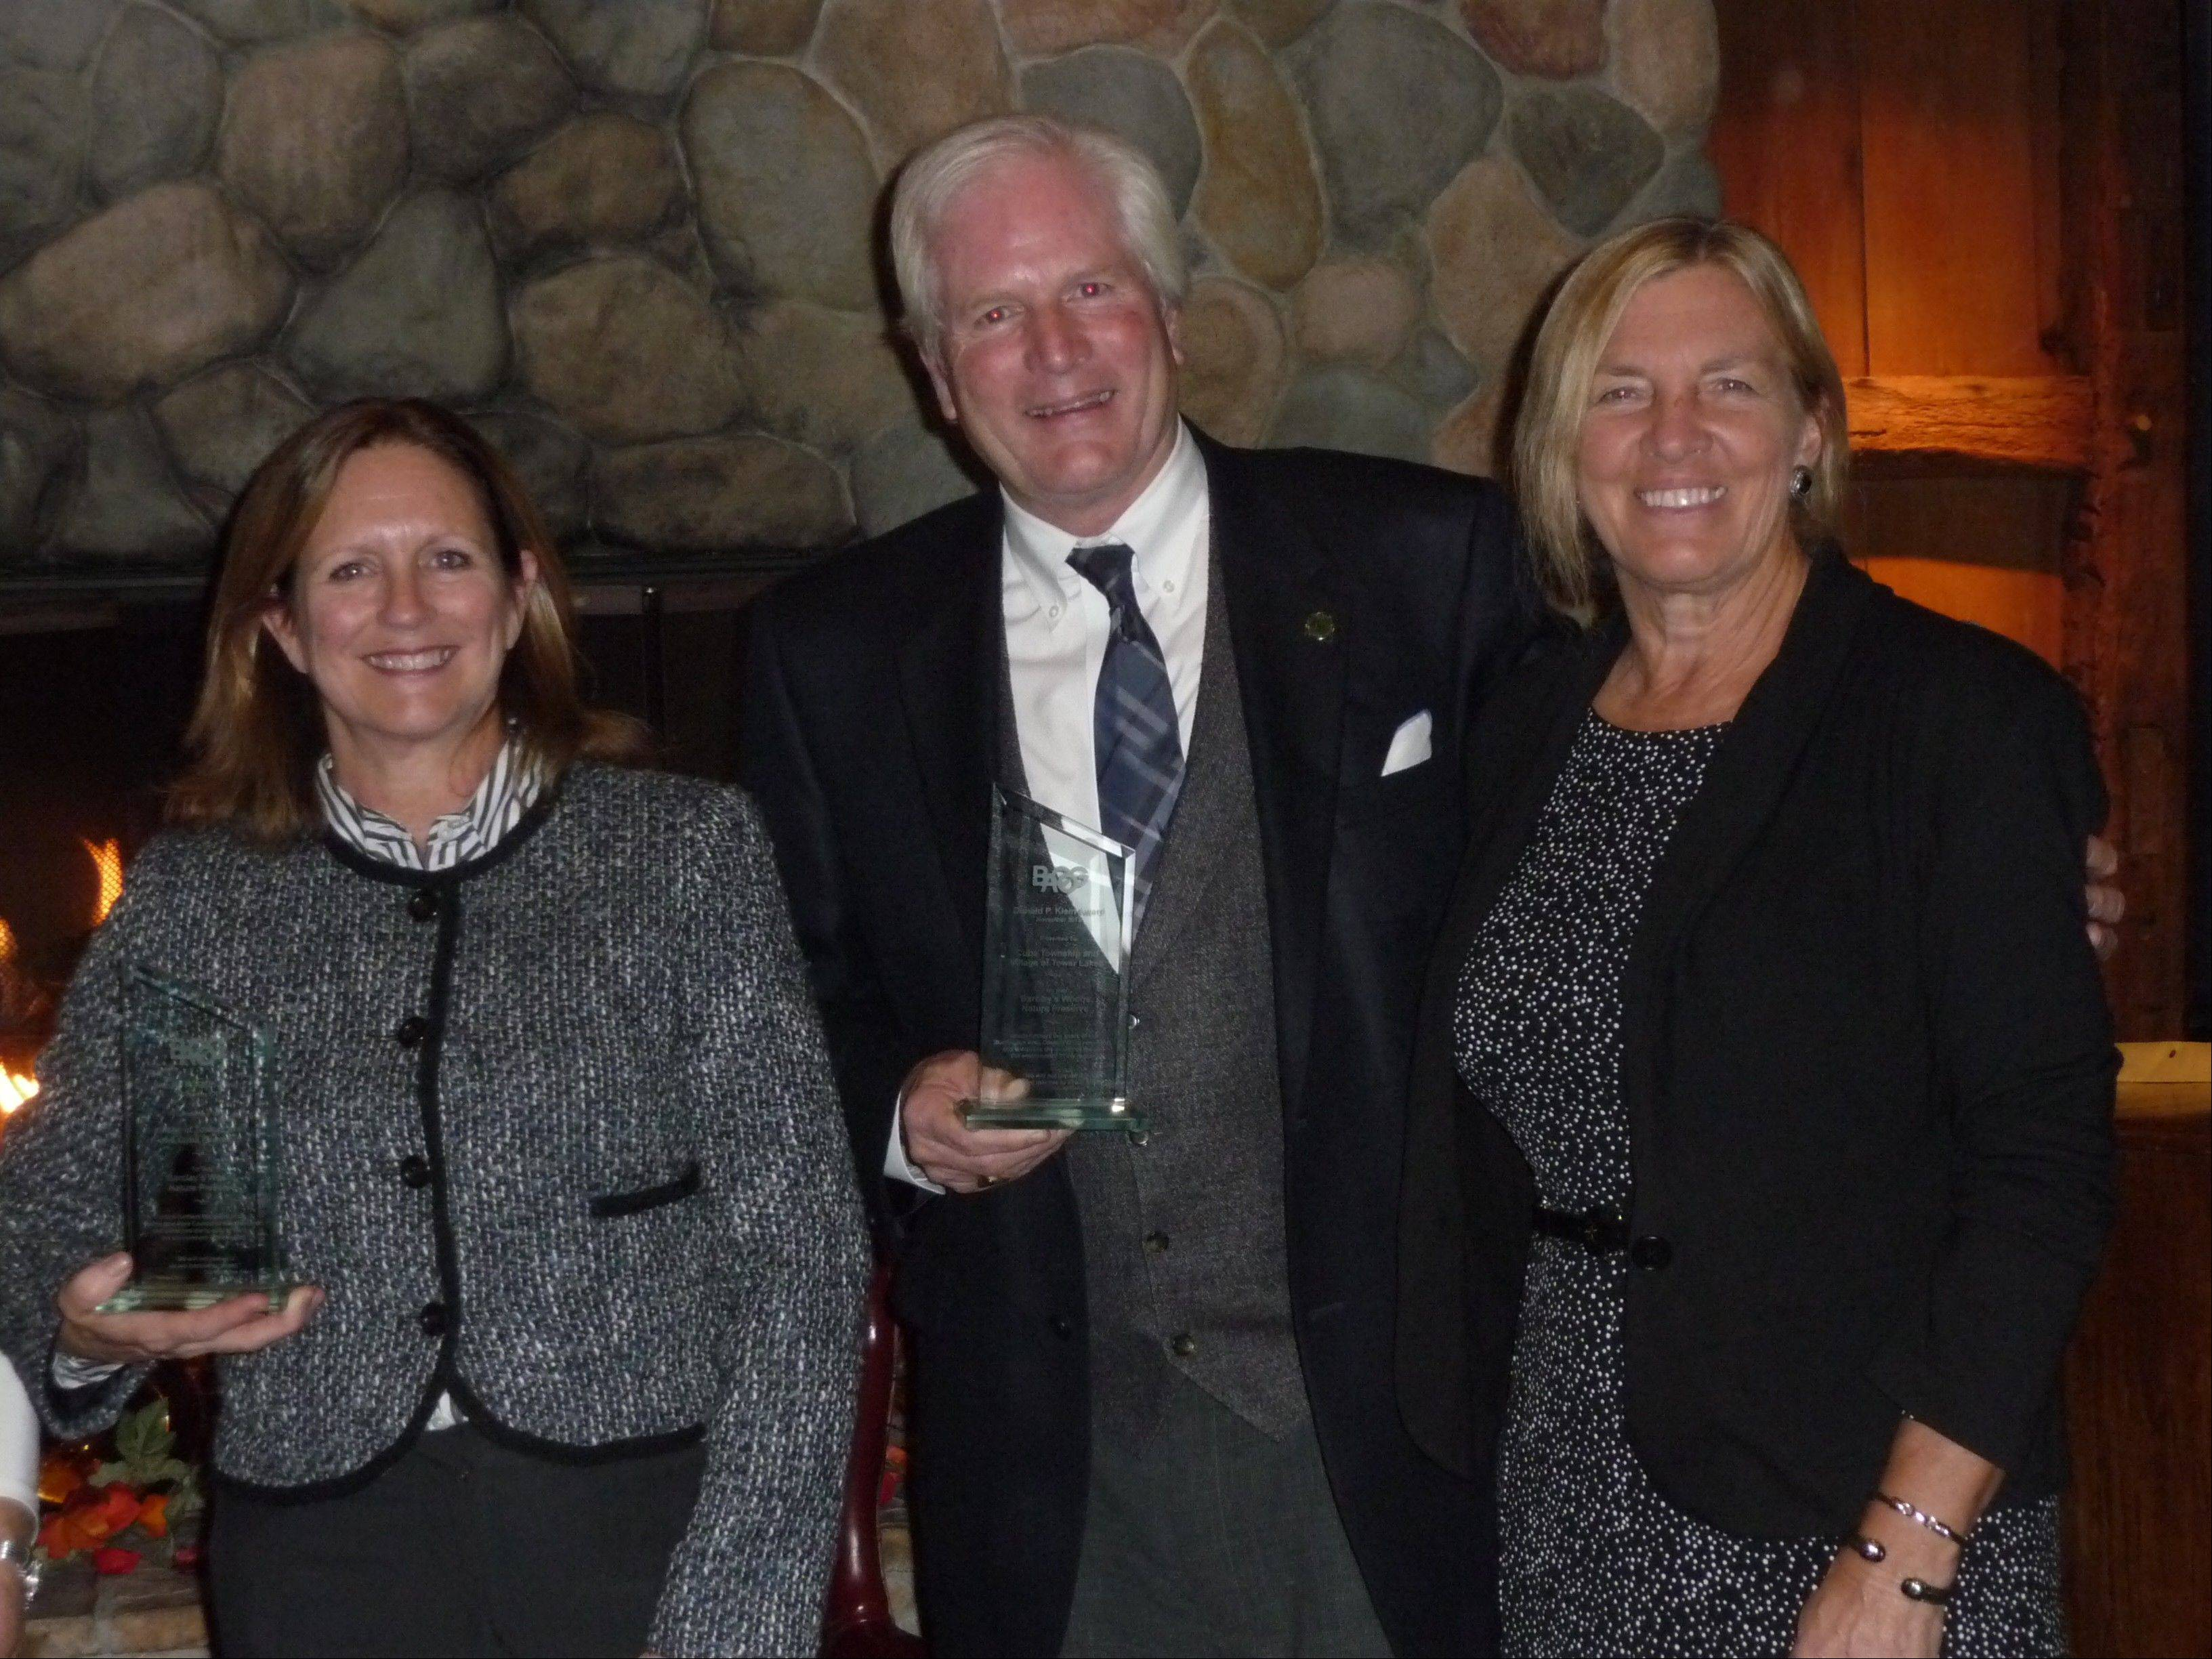 From left, Tower Lakes Village President Kathleen Leitner and Cuba Township Supervisor David Nelson receive the 2013 Donald P. Klein award from Barrington Area Council of Governments Chairwoman and South Barrington Village President Paula McCombie.